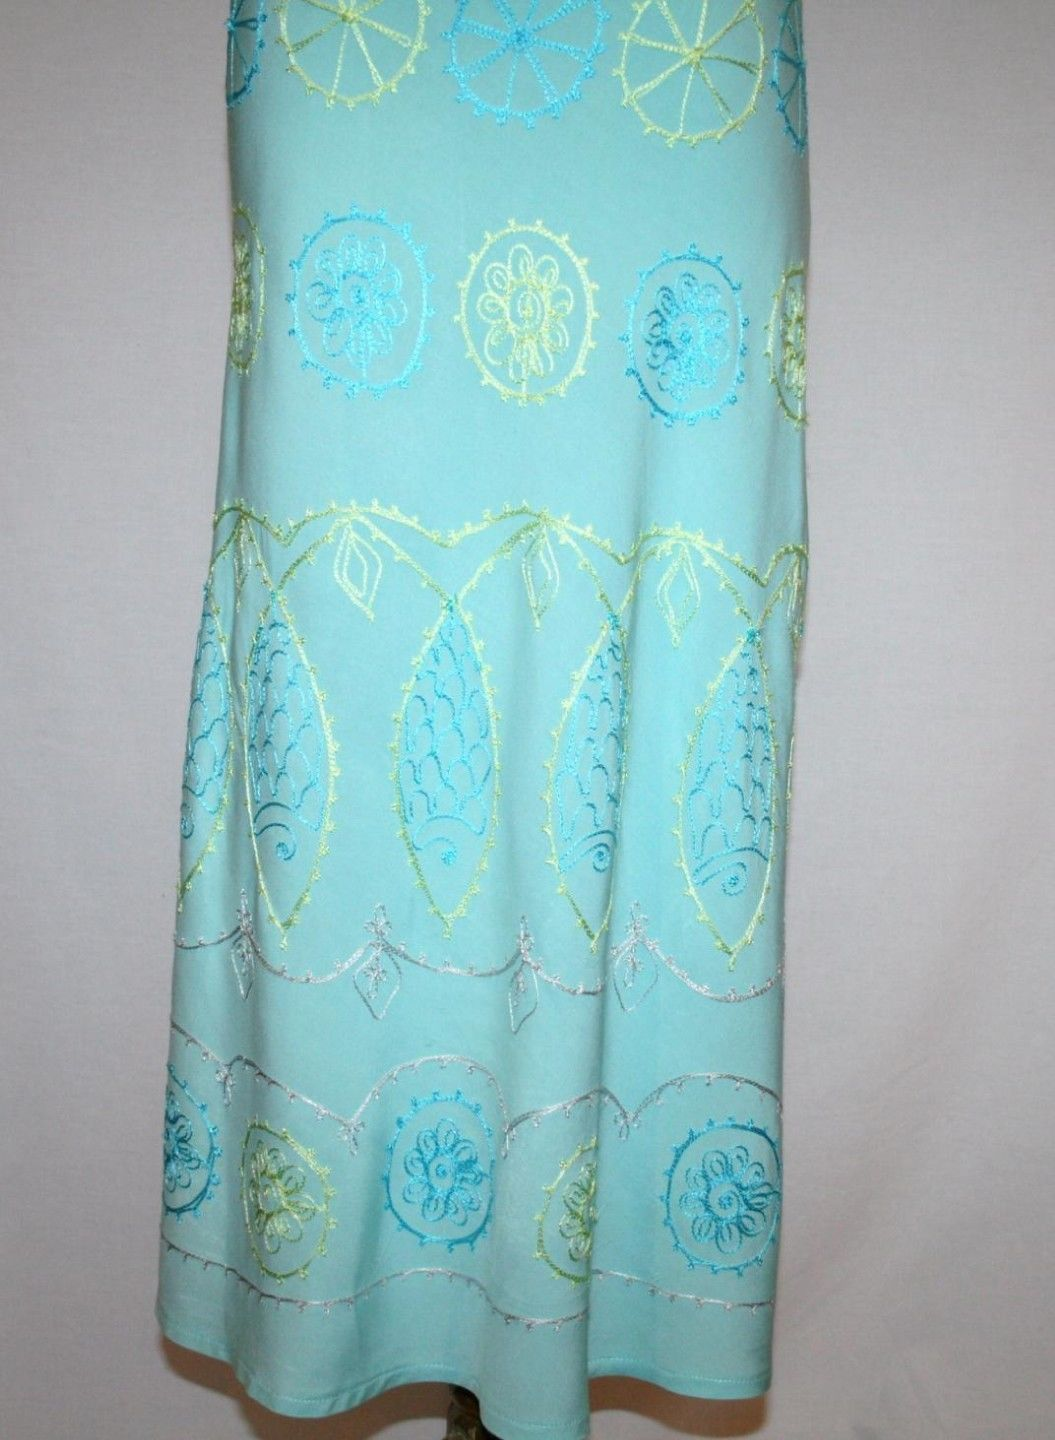 DEBBIE KATZ South Beach Rayon Turquoise Embroidered Halter Dress Small    1257